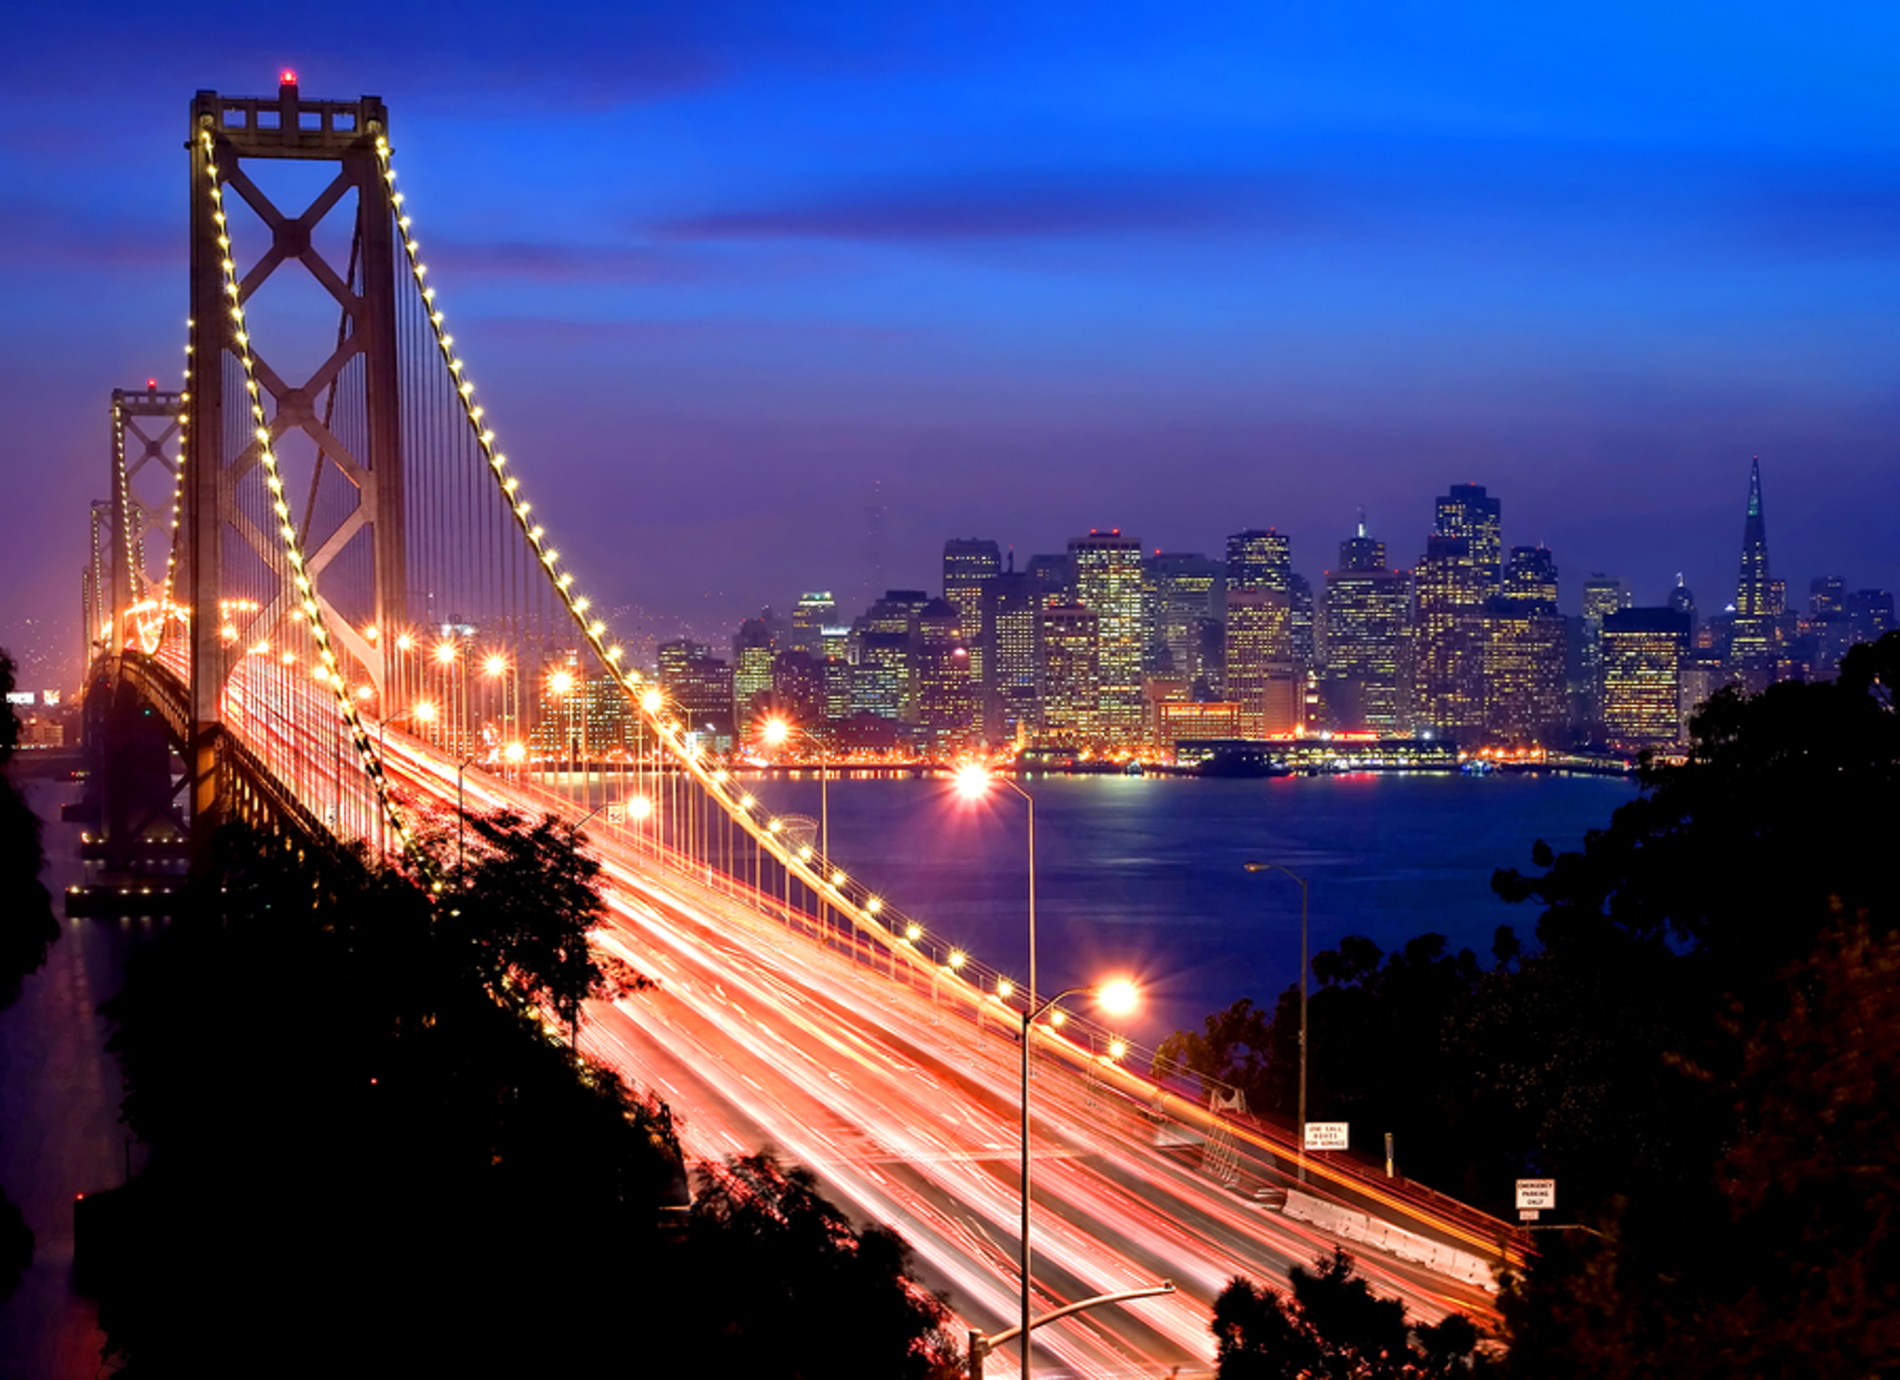 San Francisco bridge lit up at night.